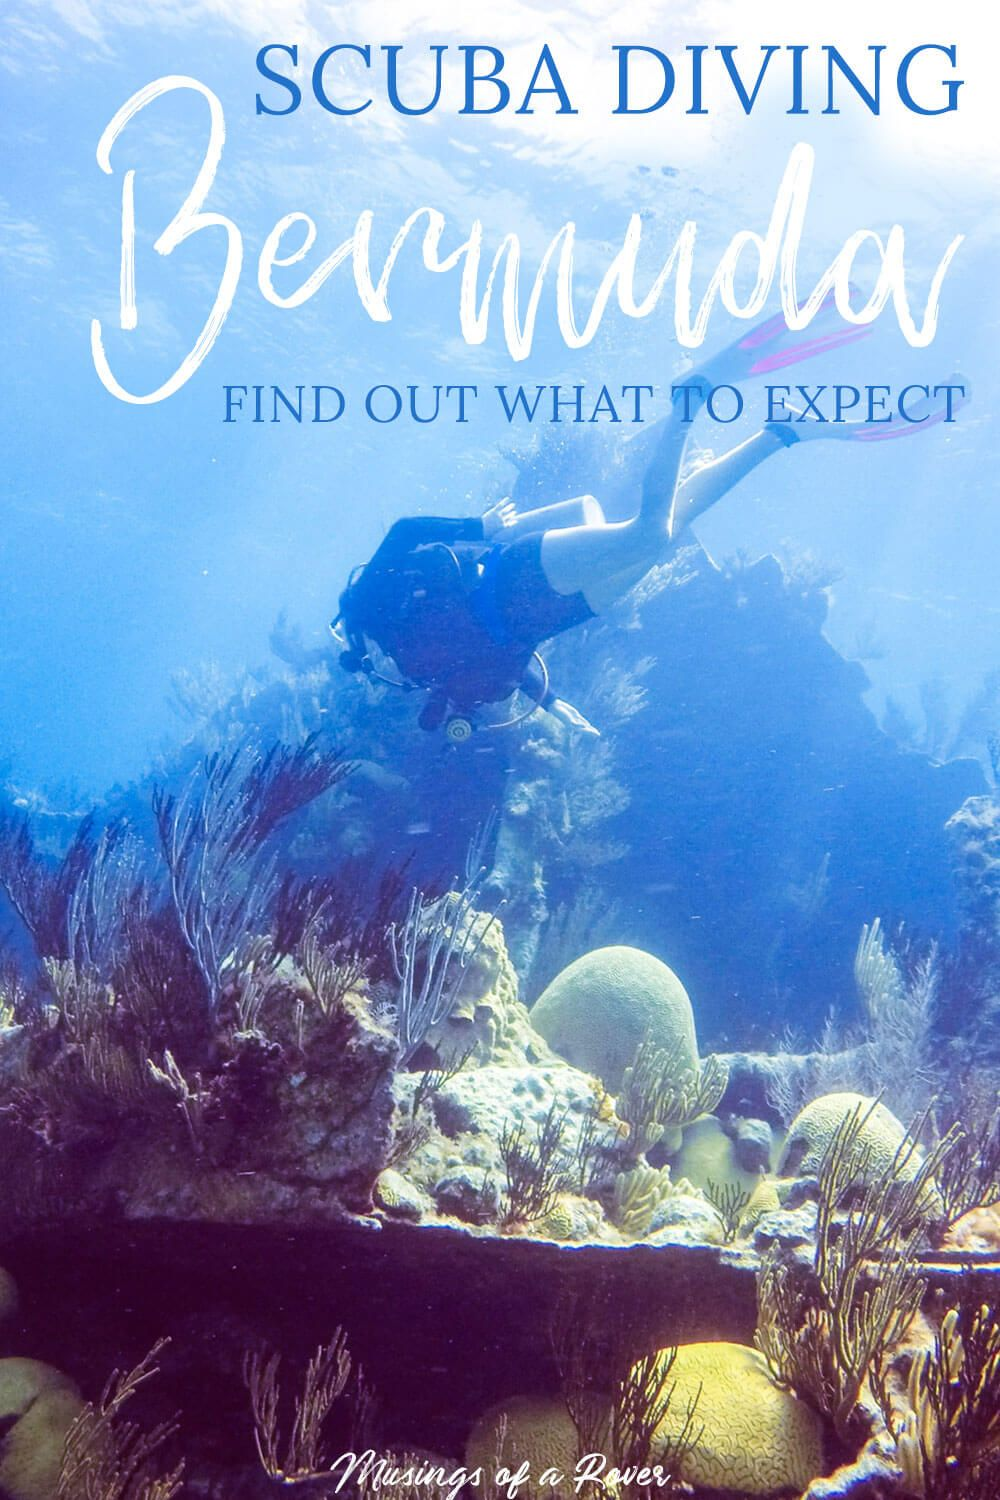 Scuba diving in Bermuda is must for your trip! Shipwrecks, marine life, & clear waters make this a top diving destination. Find out what to expect! And discover why you should dive with Blue Water Divers. Hint great service, great communication, low(est) price, and small groups!